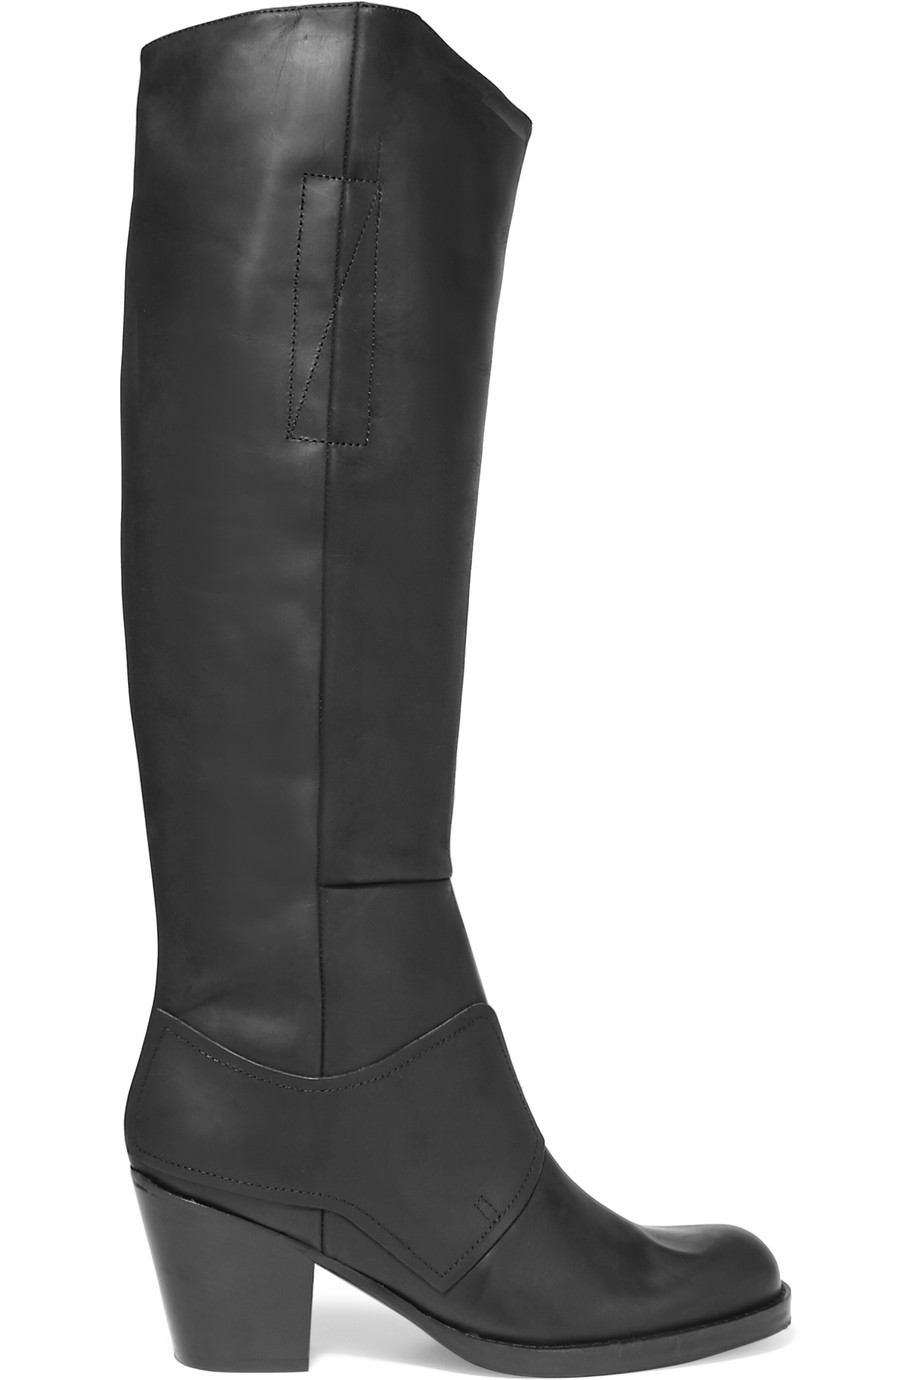 Acne Studios Leathers PISTOL LEATHER BOOTS